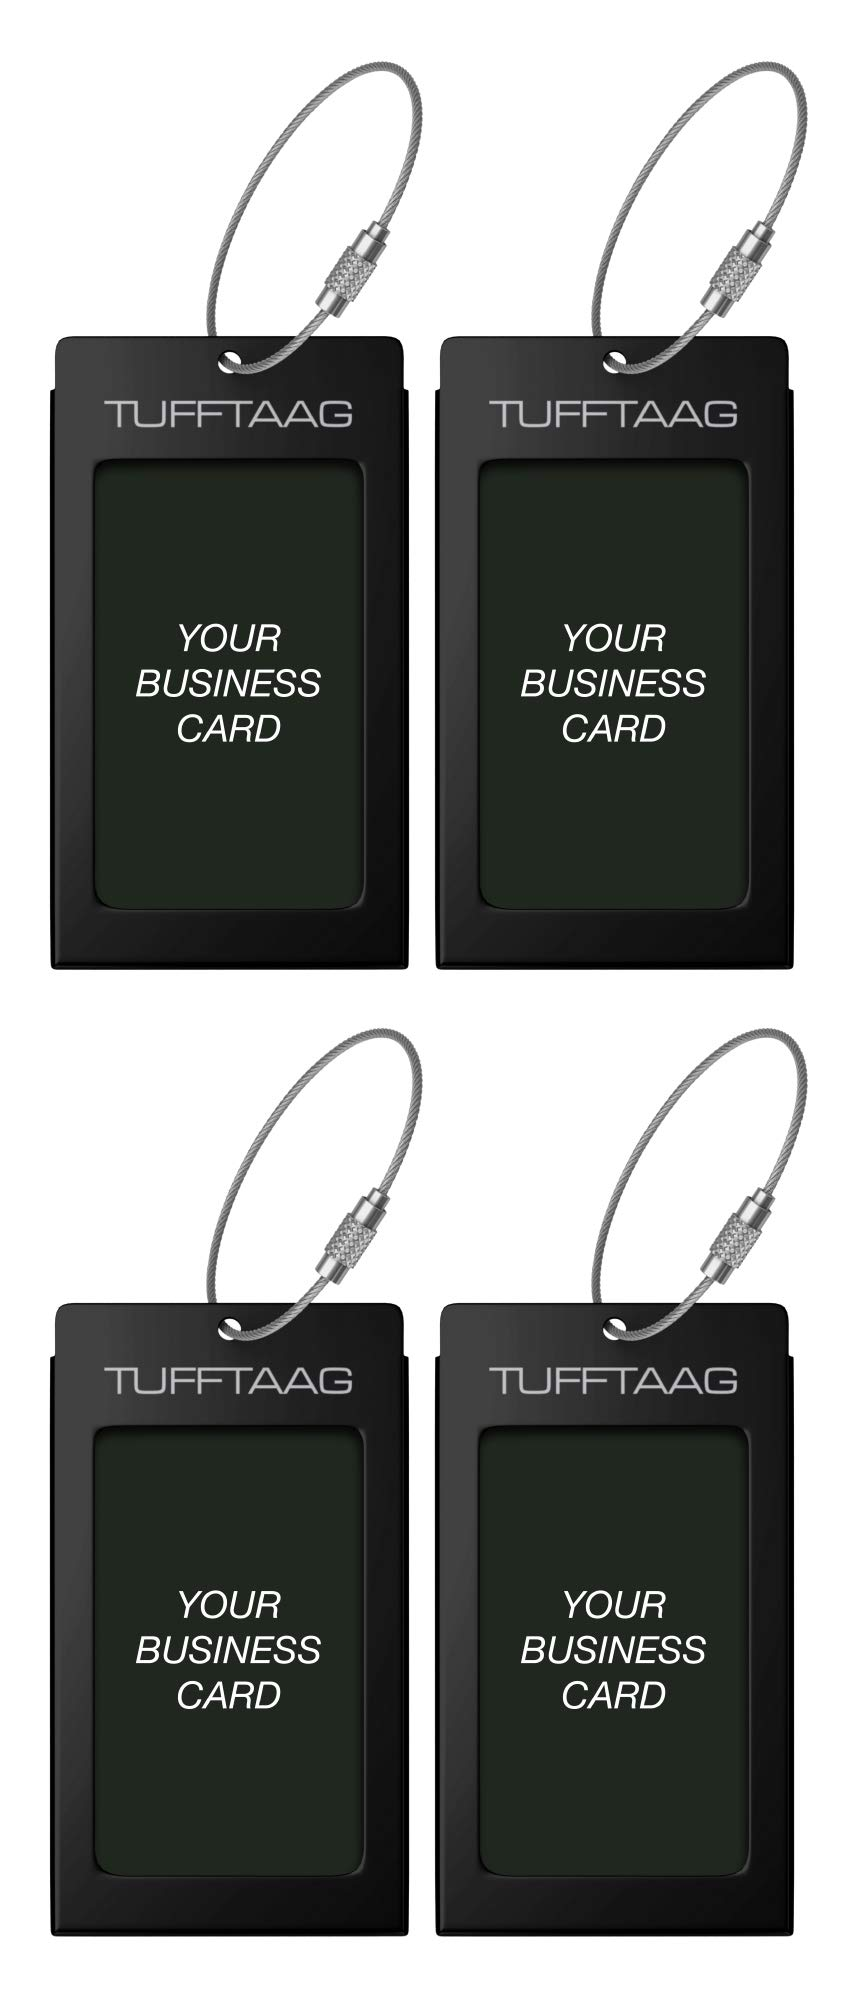 Luggage Tags TUFFTAAG for Business Cards, Metal Suitcase Labels, 4 Pack Bundle (4 Black) by ProudGuy